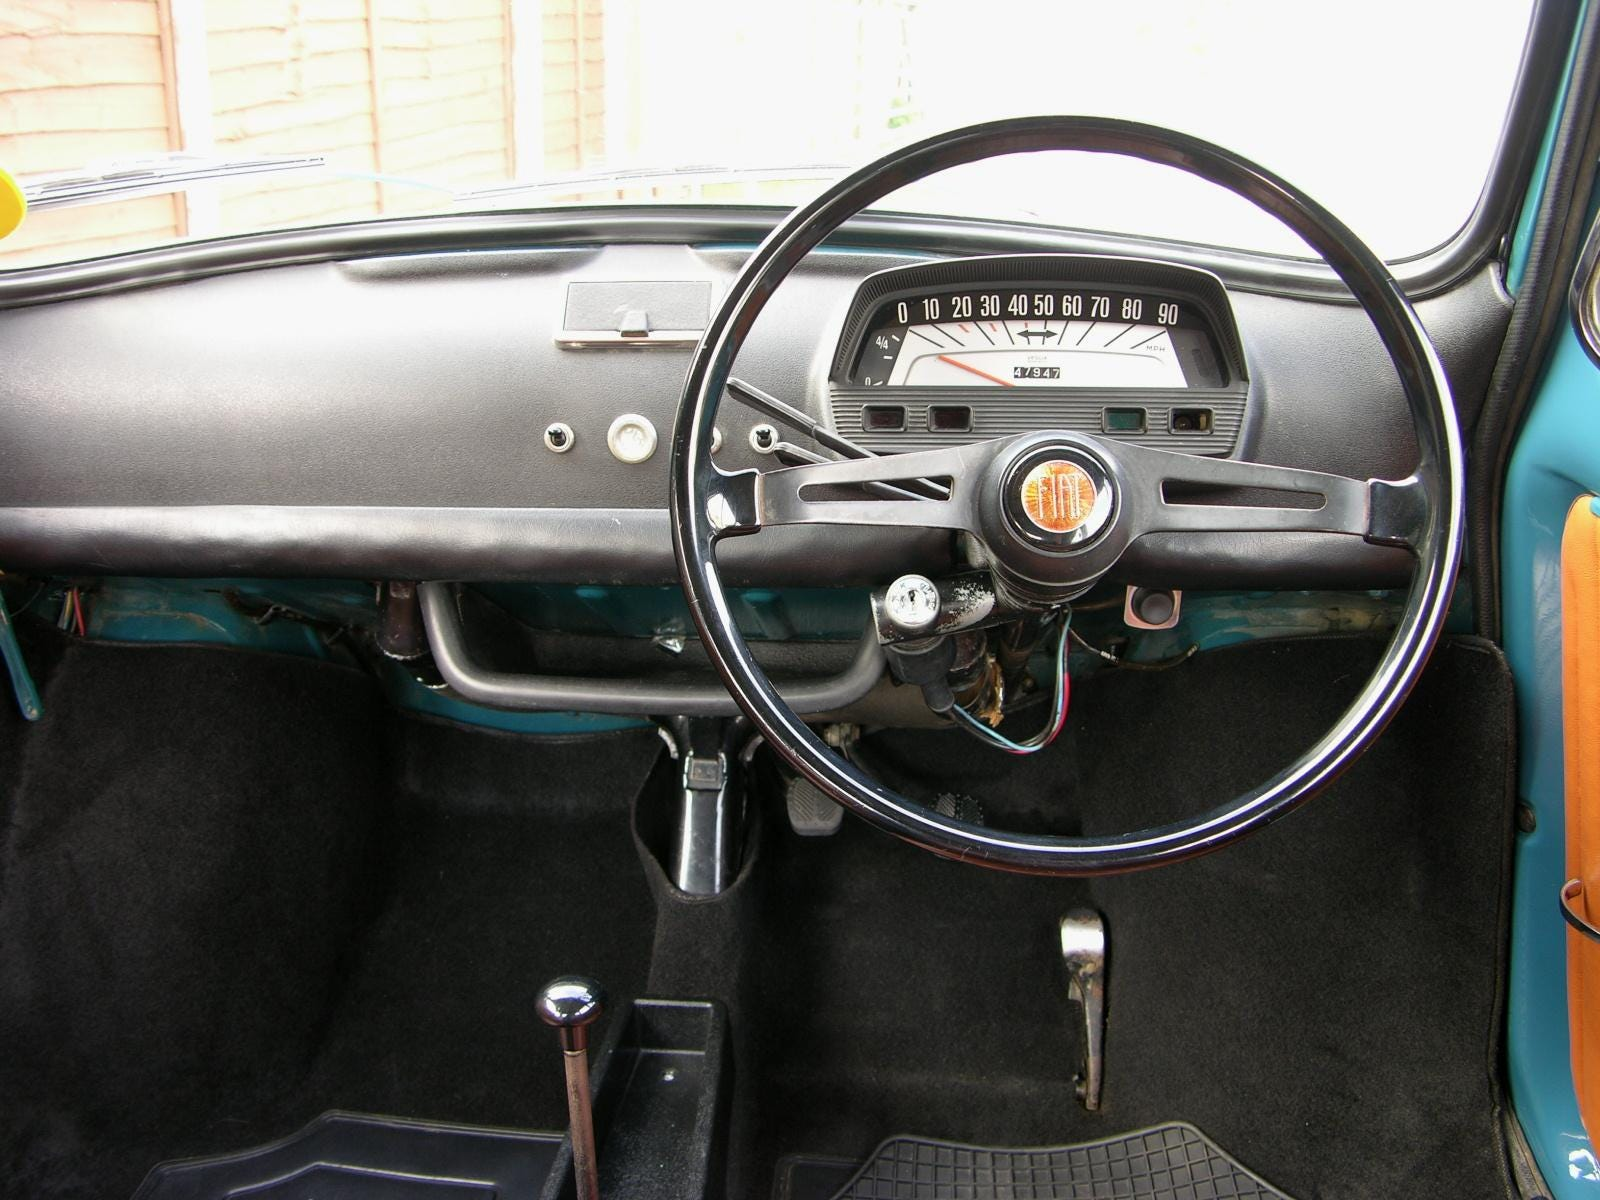 The matte anti-glare plastic dash cladding is clearly visible in the interior of this RHD-spec 500L. Note the blanking plug in the center of the dashboard to cover the hole the ignition switch previously took up on 500F, 500D and Nuova models. 500L cars also featured a new steering wheel - two metal central spokes flanking a FIAT badge with black plastic wheel.